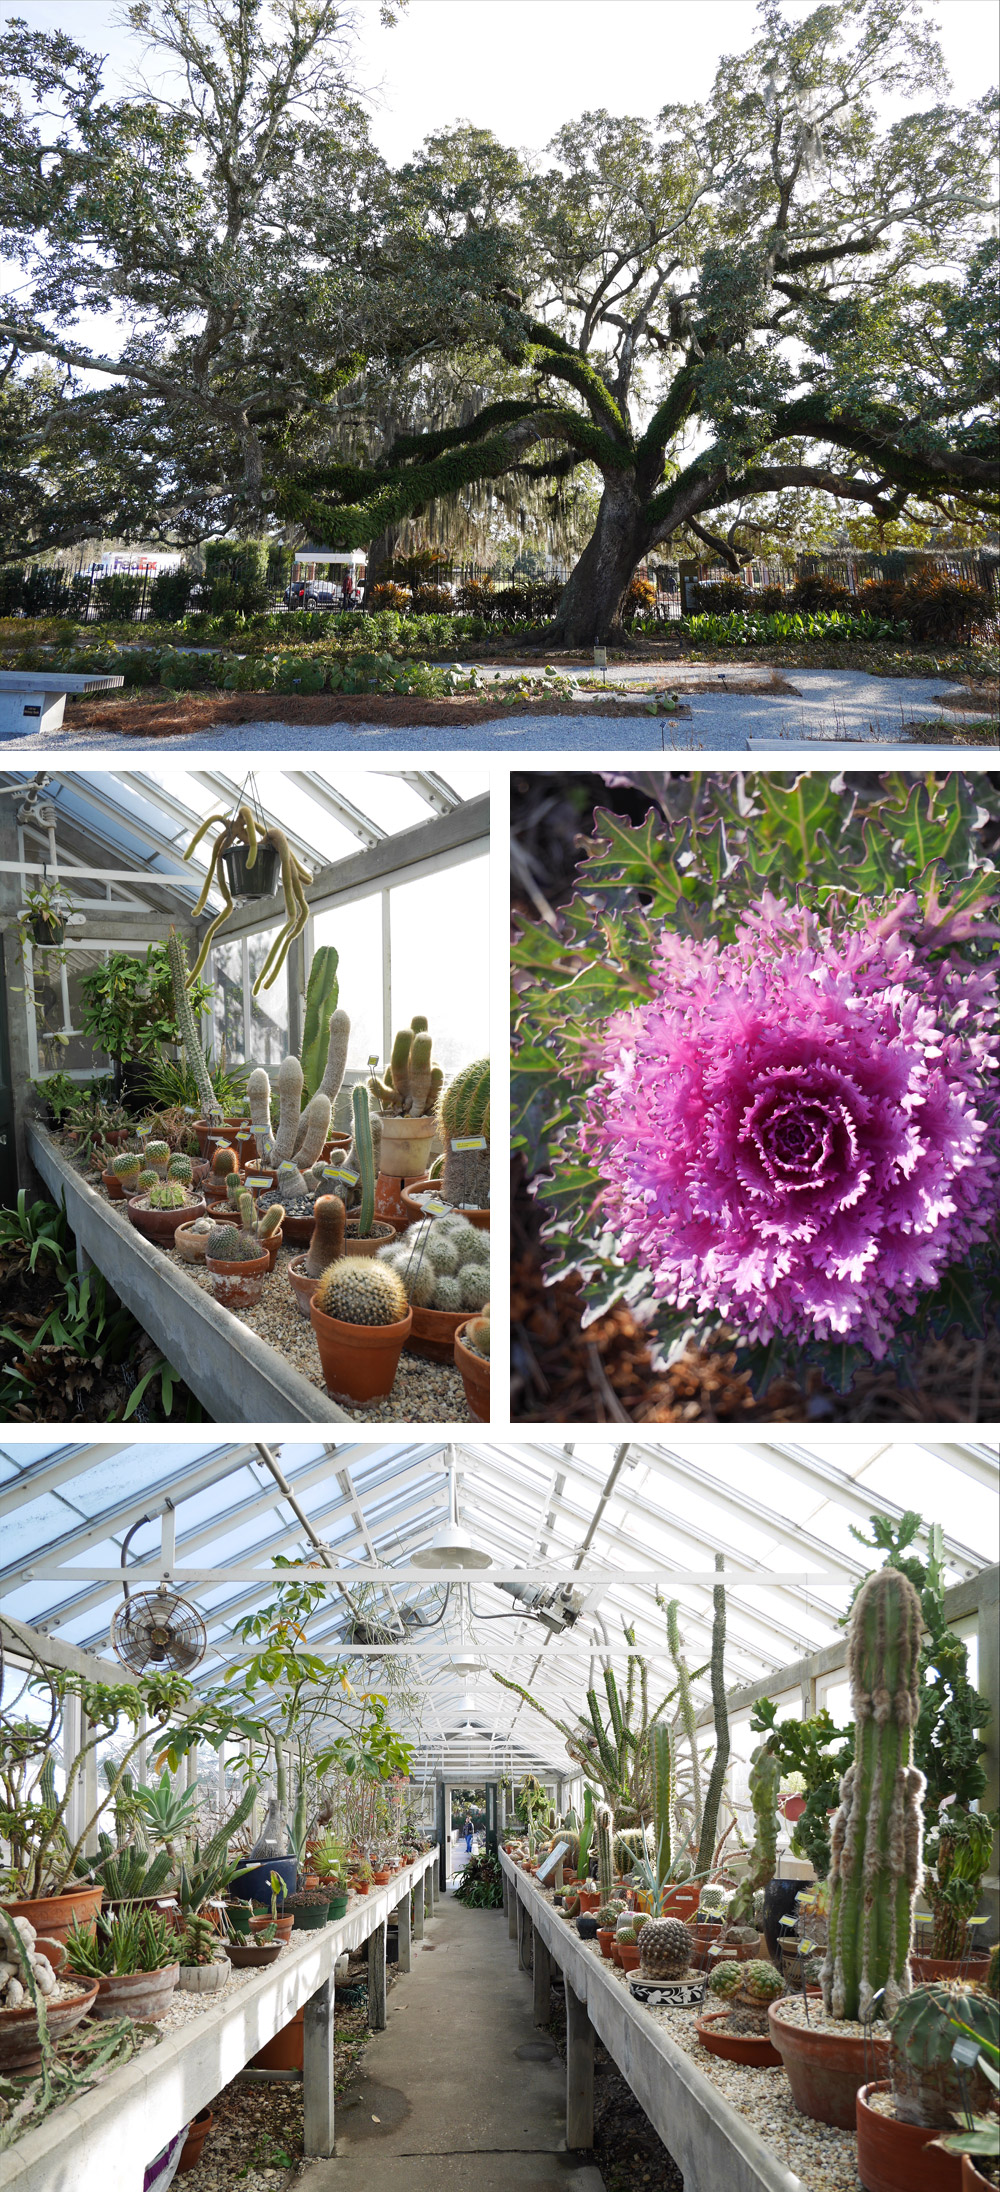 Things To Do in New Orleans: Botanical Gardens